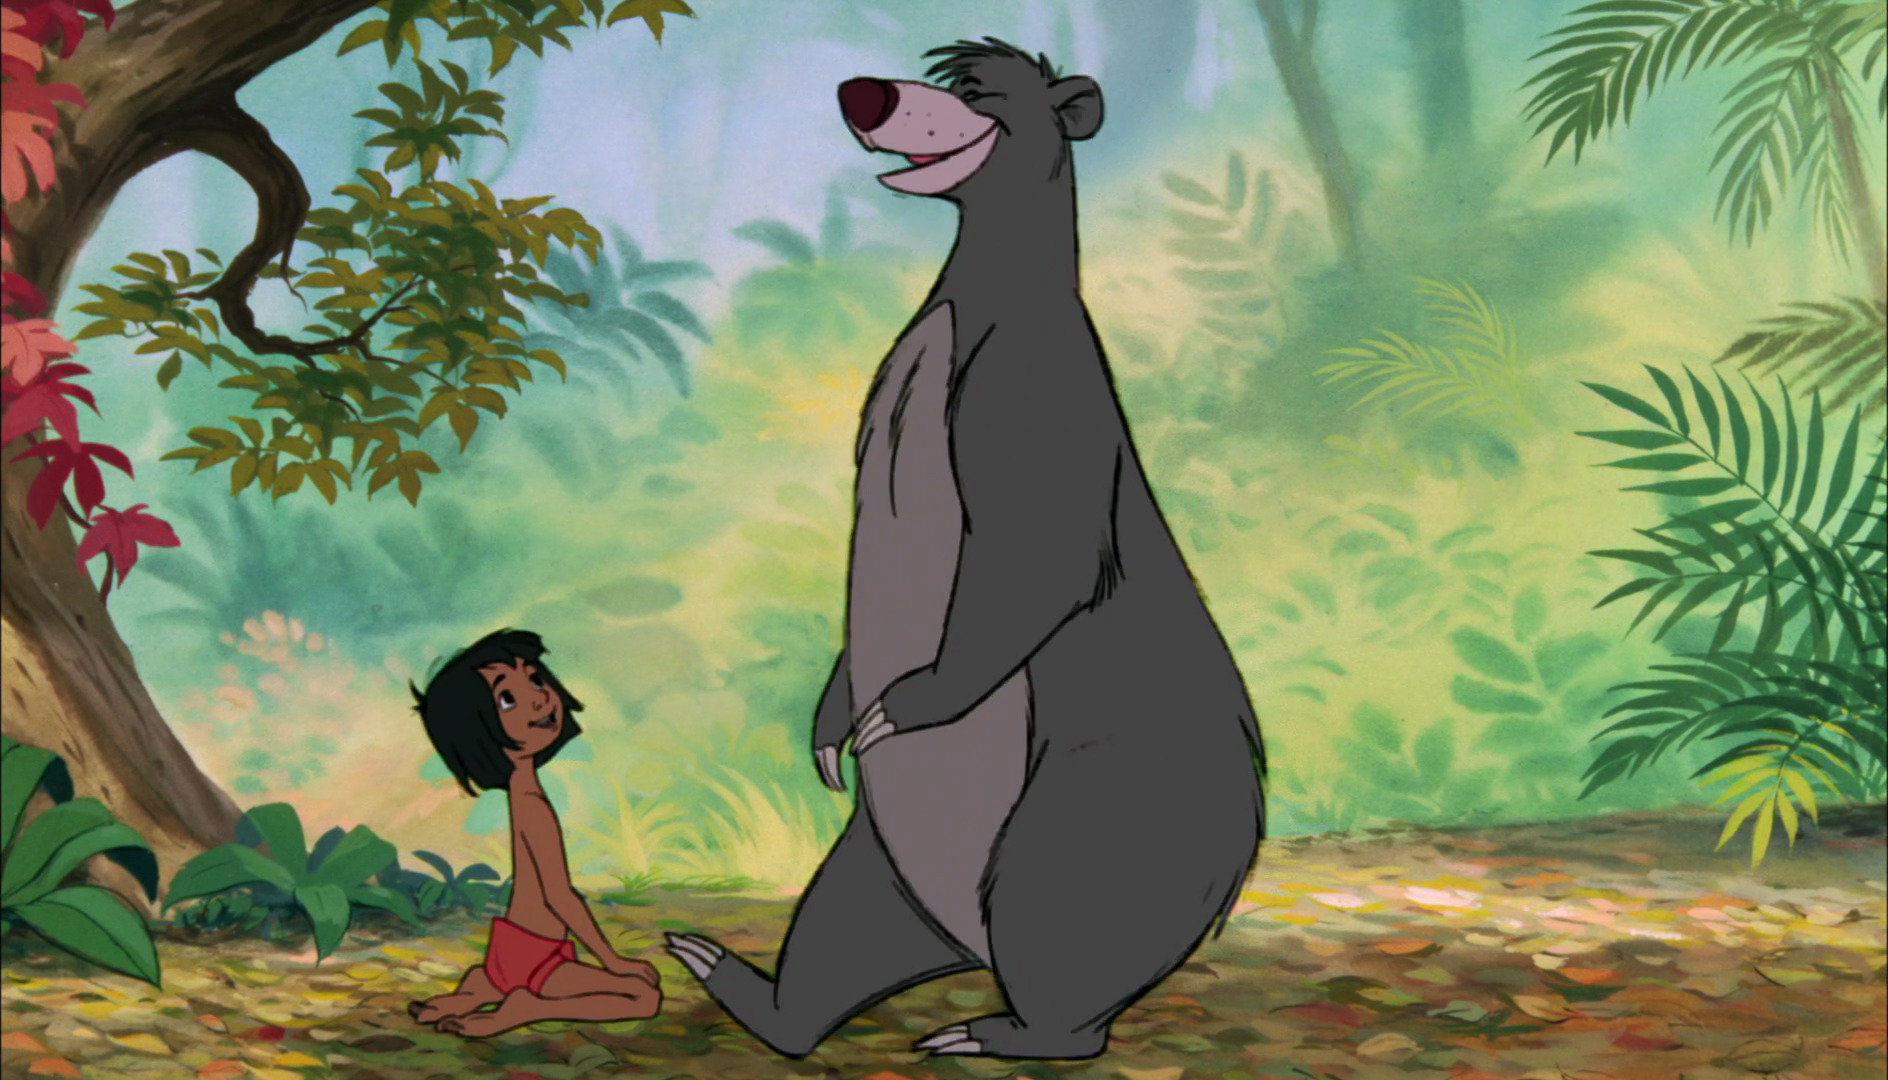 The Jungle Book New Theme Song